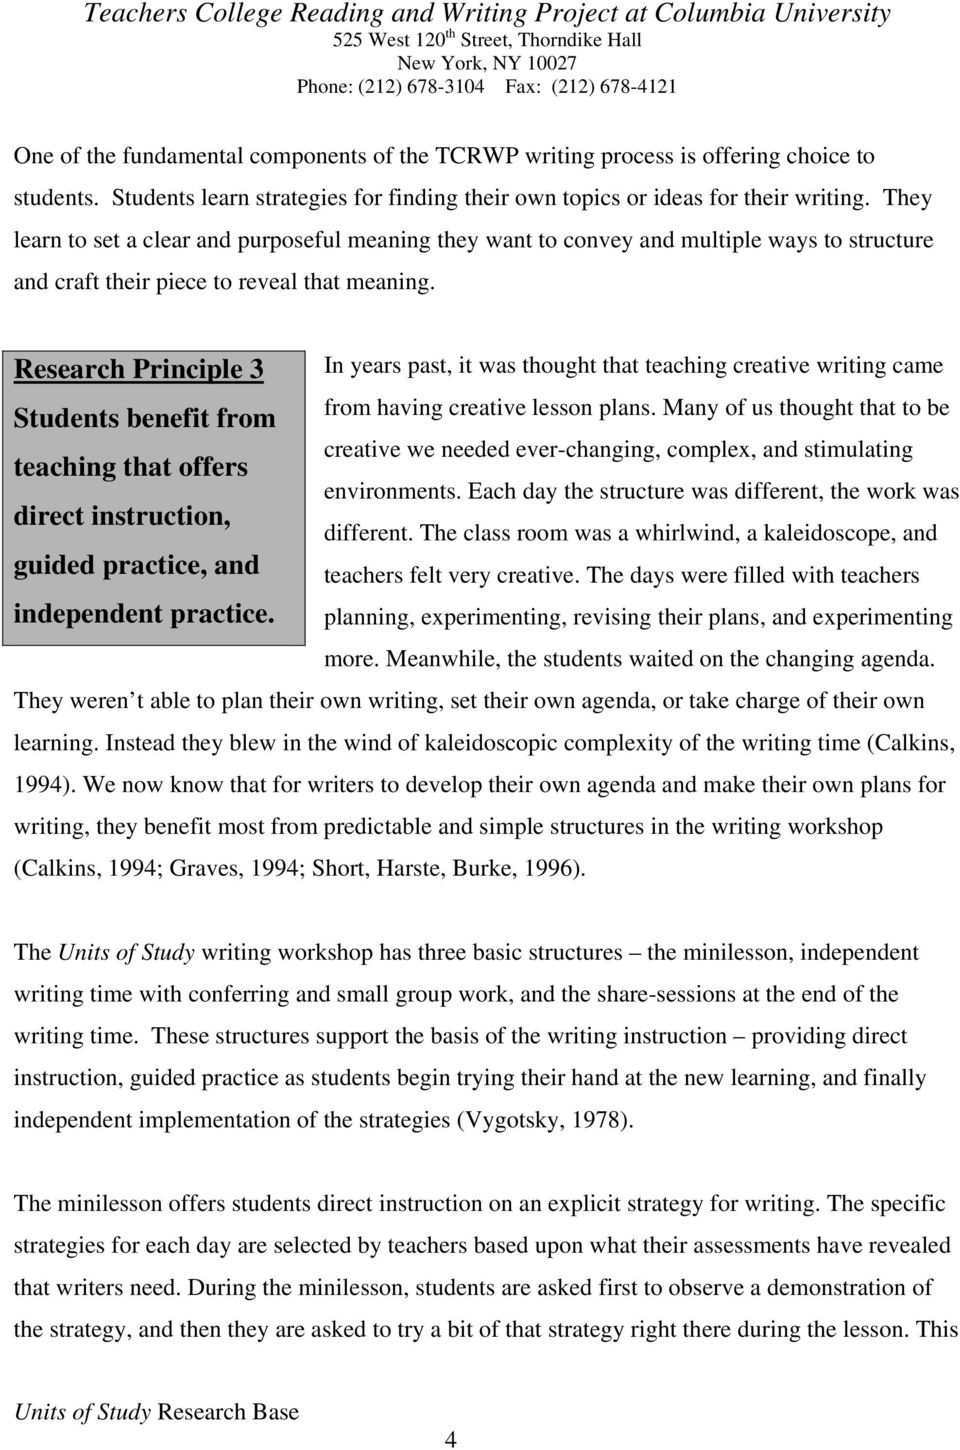 Research Principle 3 In years past, it was thought that teaching creative writing came from having creative lesson plans.